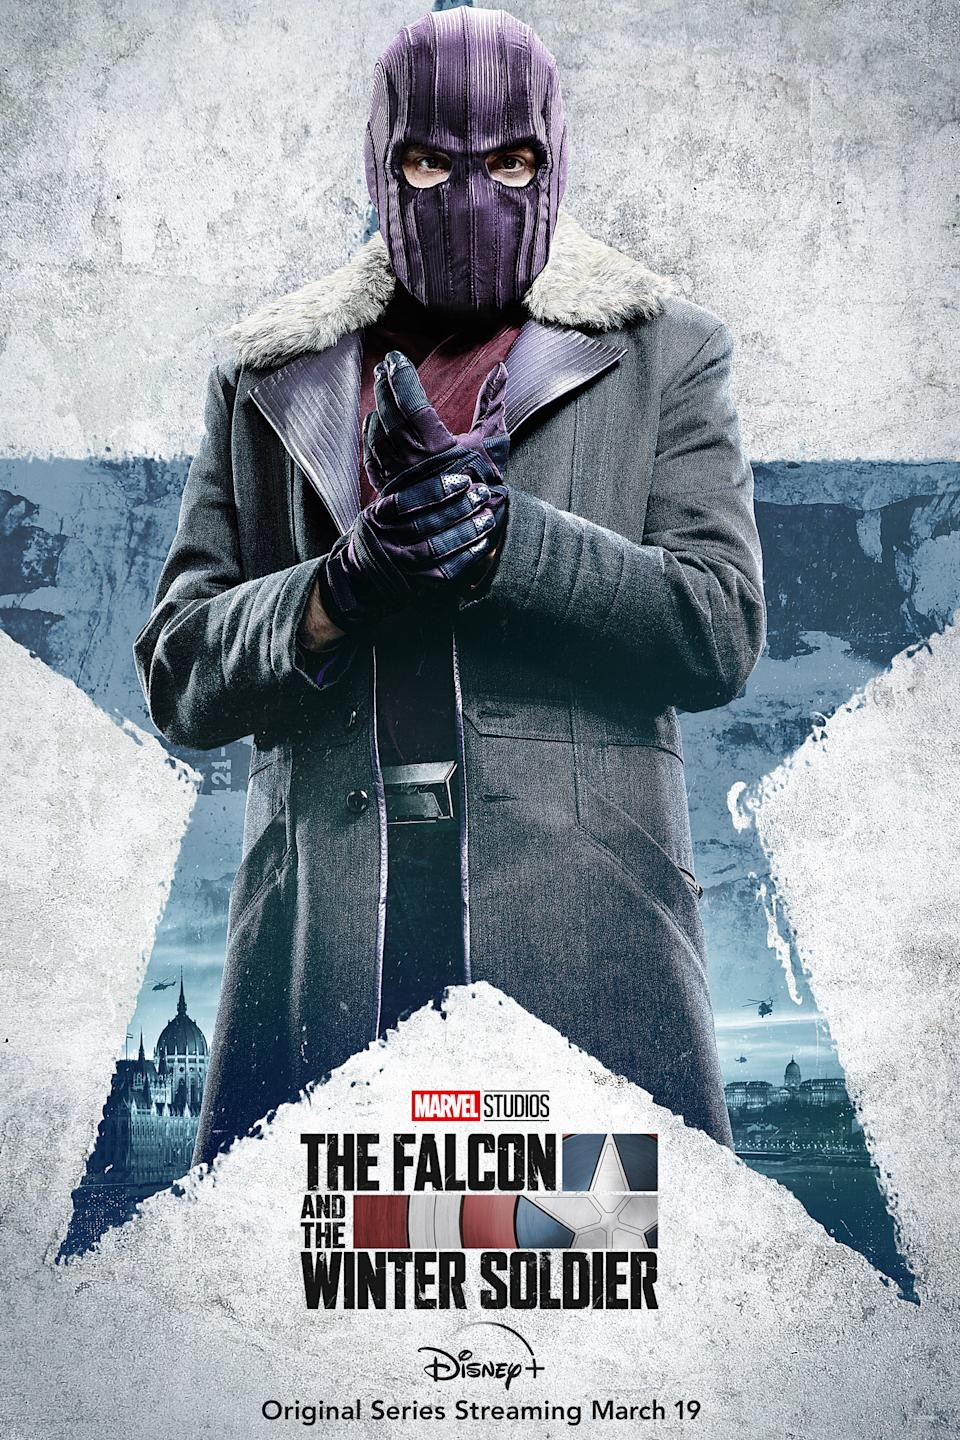 Daniel Brühl as Zemo in character posters for Marvel Studios' Disney+ series, The Falcon And The Winter Soldier.